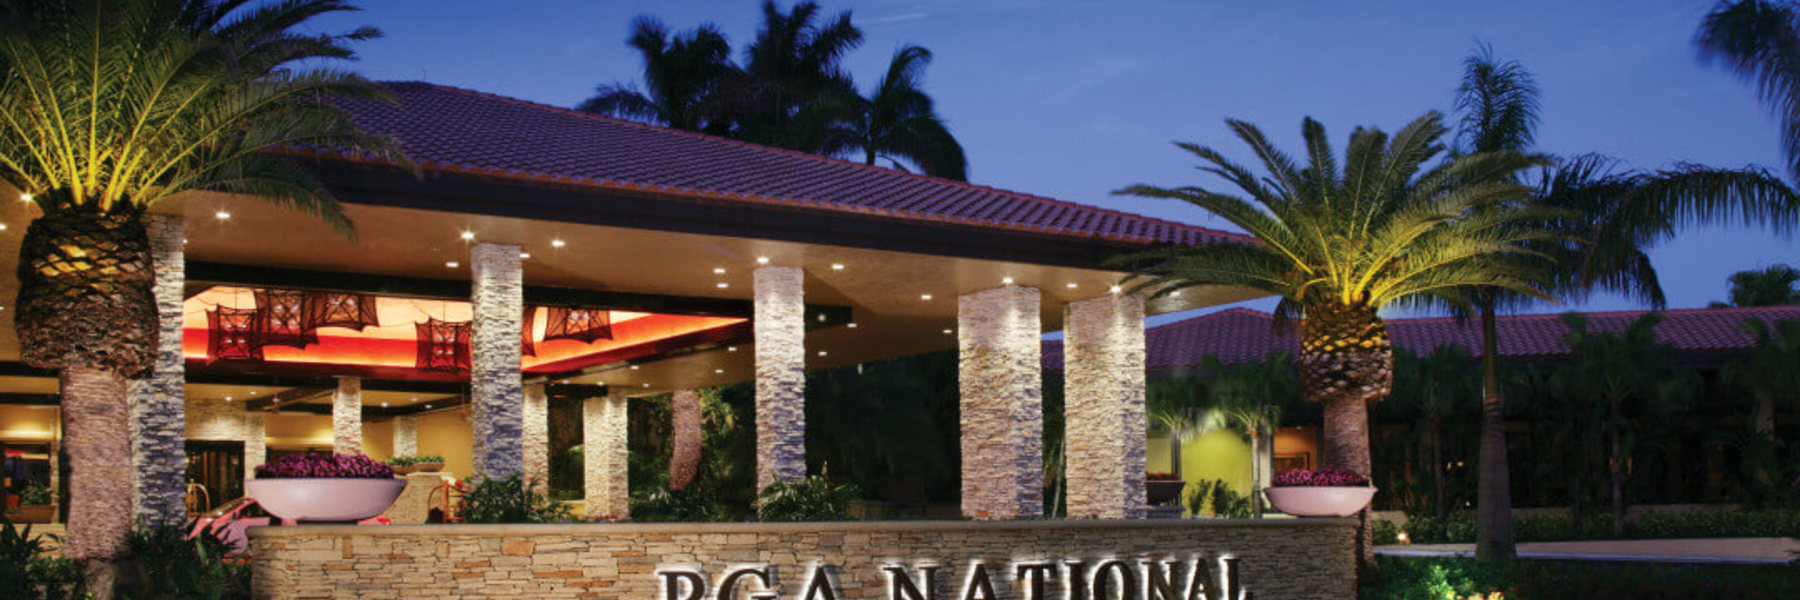 Golf Vacation Package - PGA National Fall/Winter UNLIMITED Golf Getaway for $329 per day!